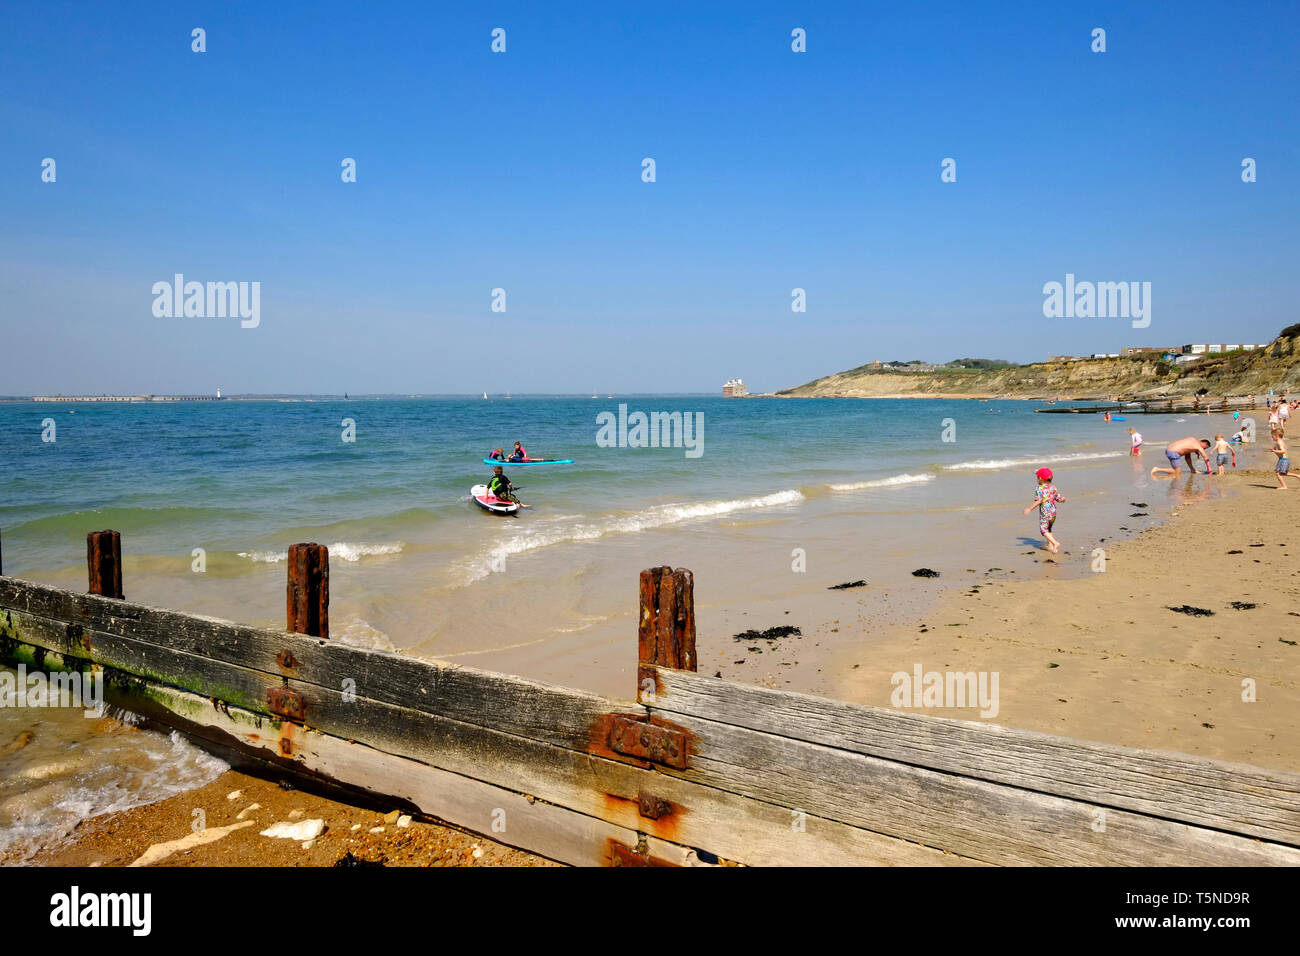 Colwell Bay during the Easter weekend 2019 heatwave and the beach is full of people sunbathing and taking part in all manner of seaside activity. - Stock Image